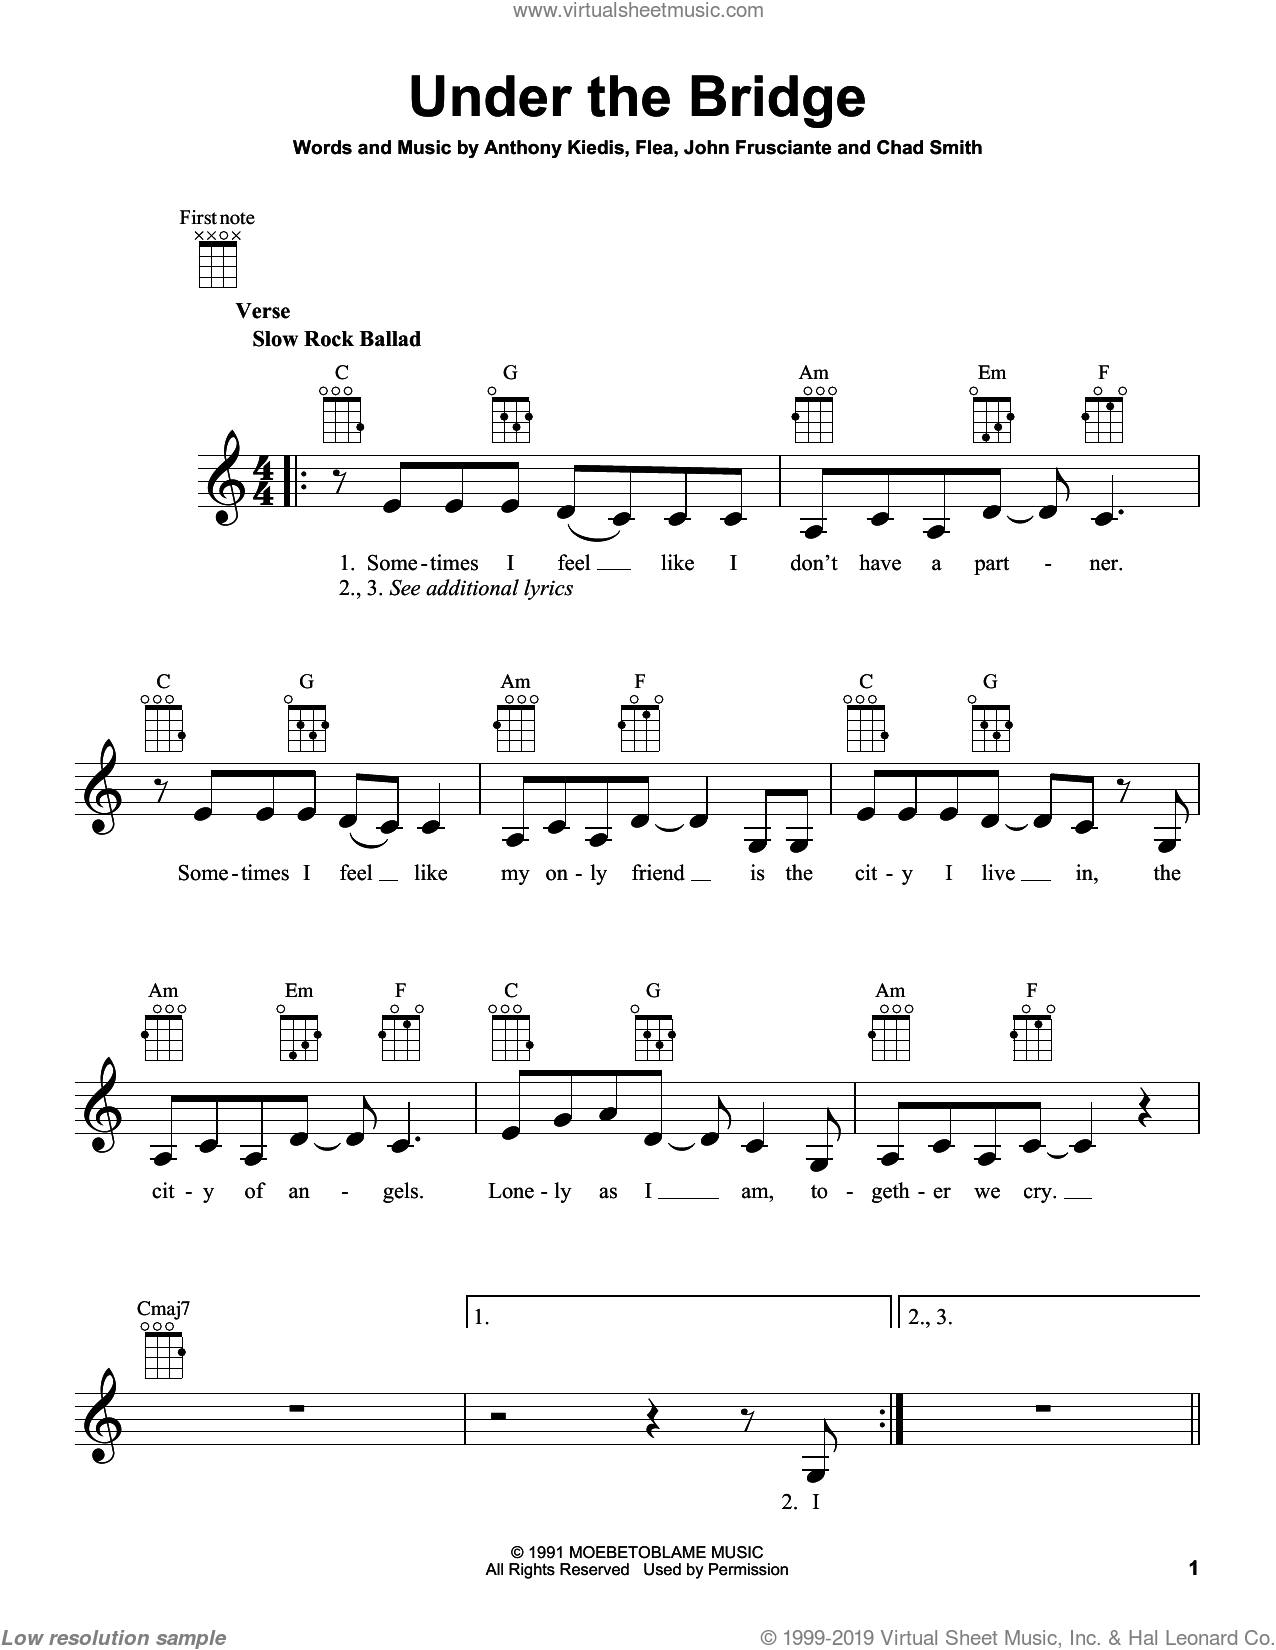 Under The Bridge sheet music for ukulele by Red Hot Chili Peppers